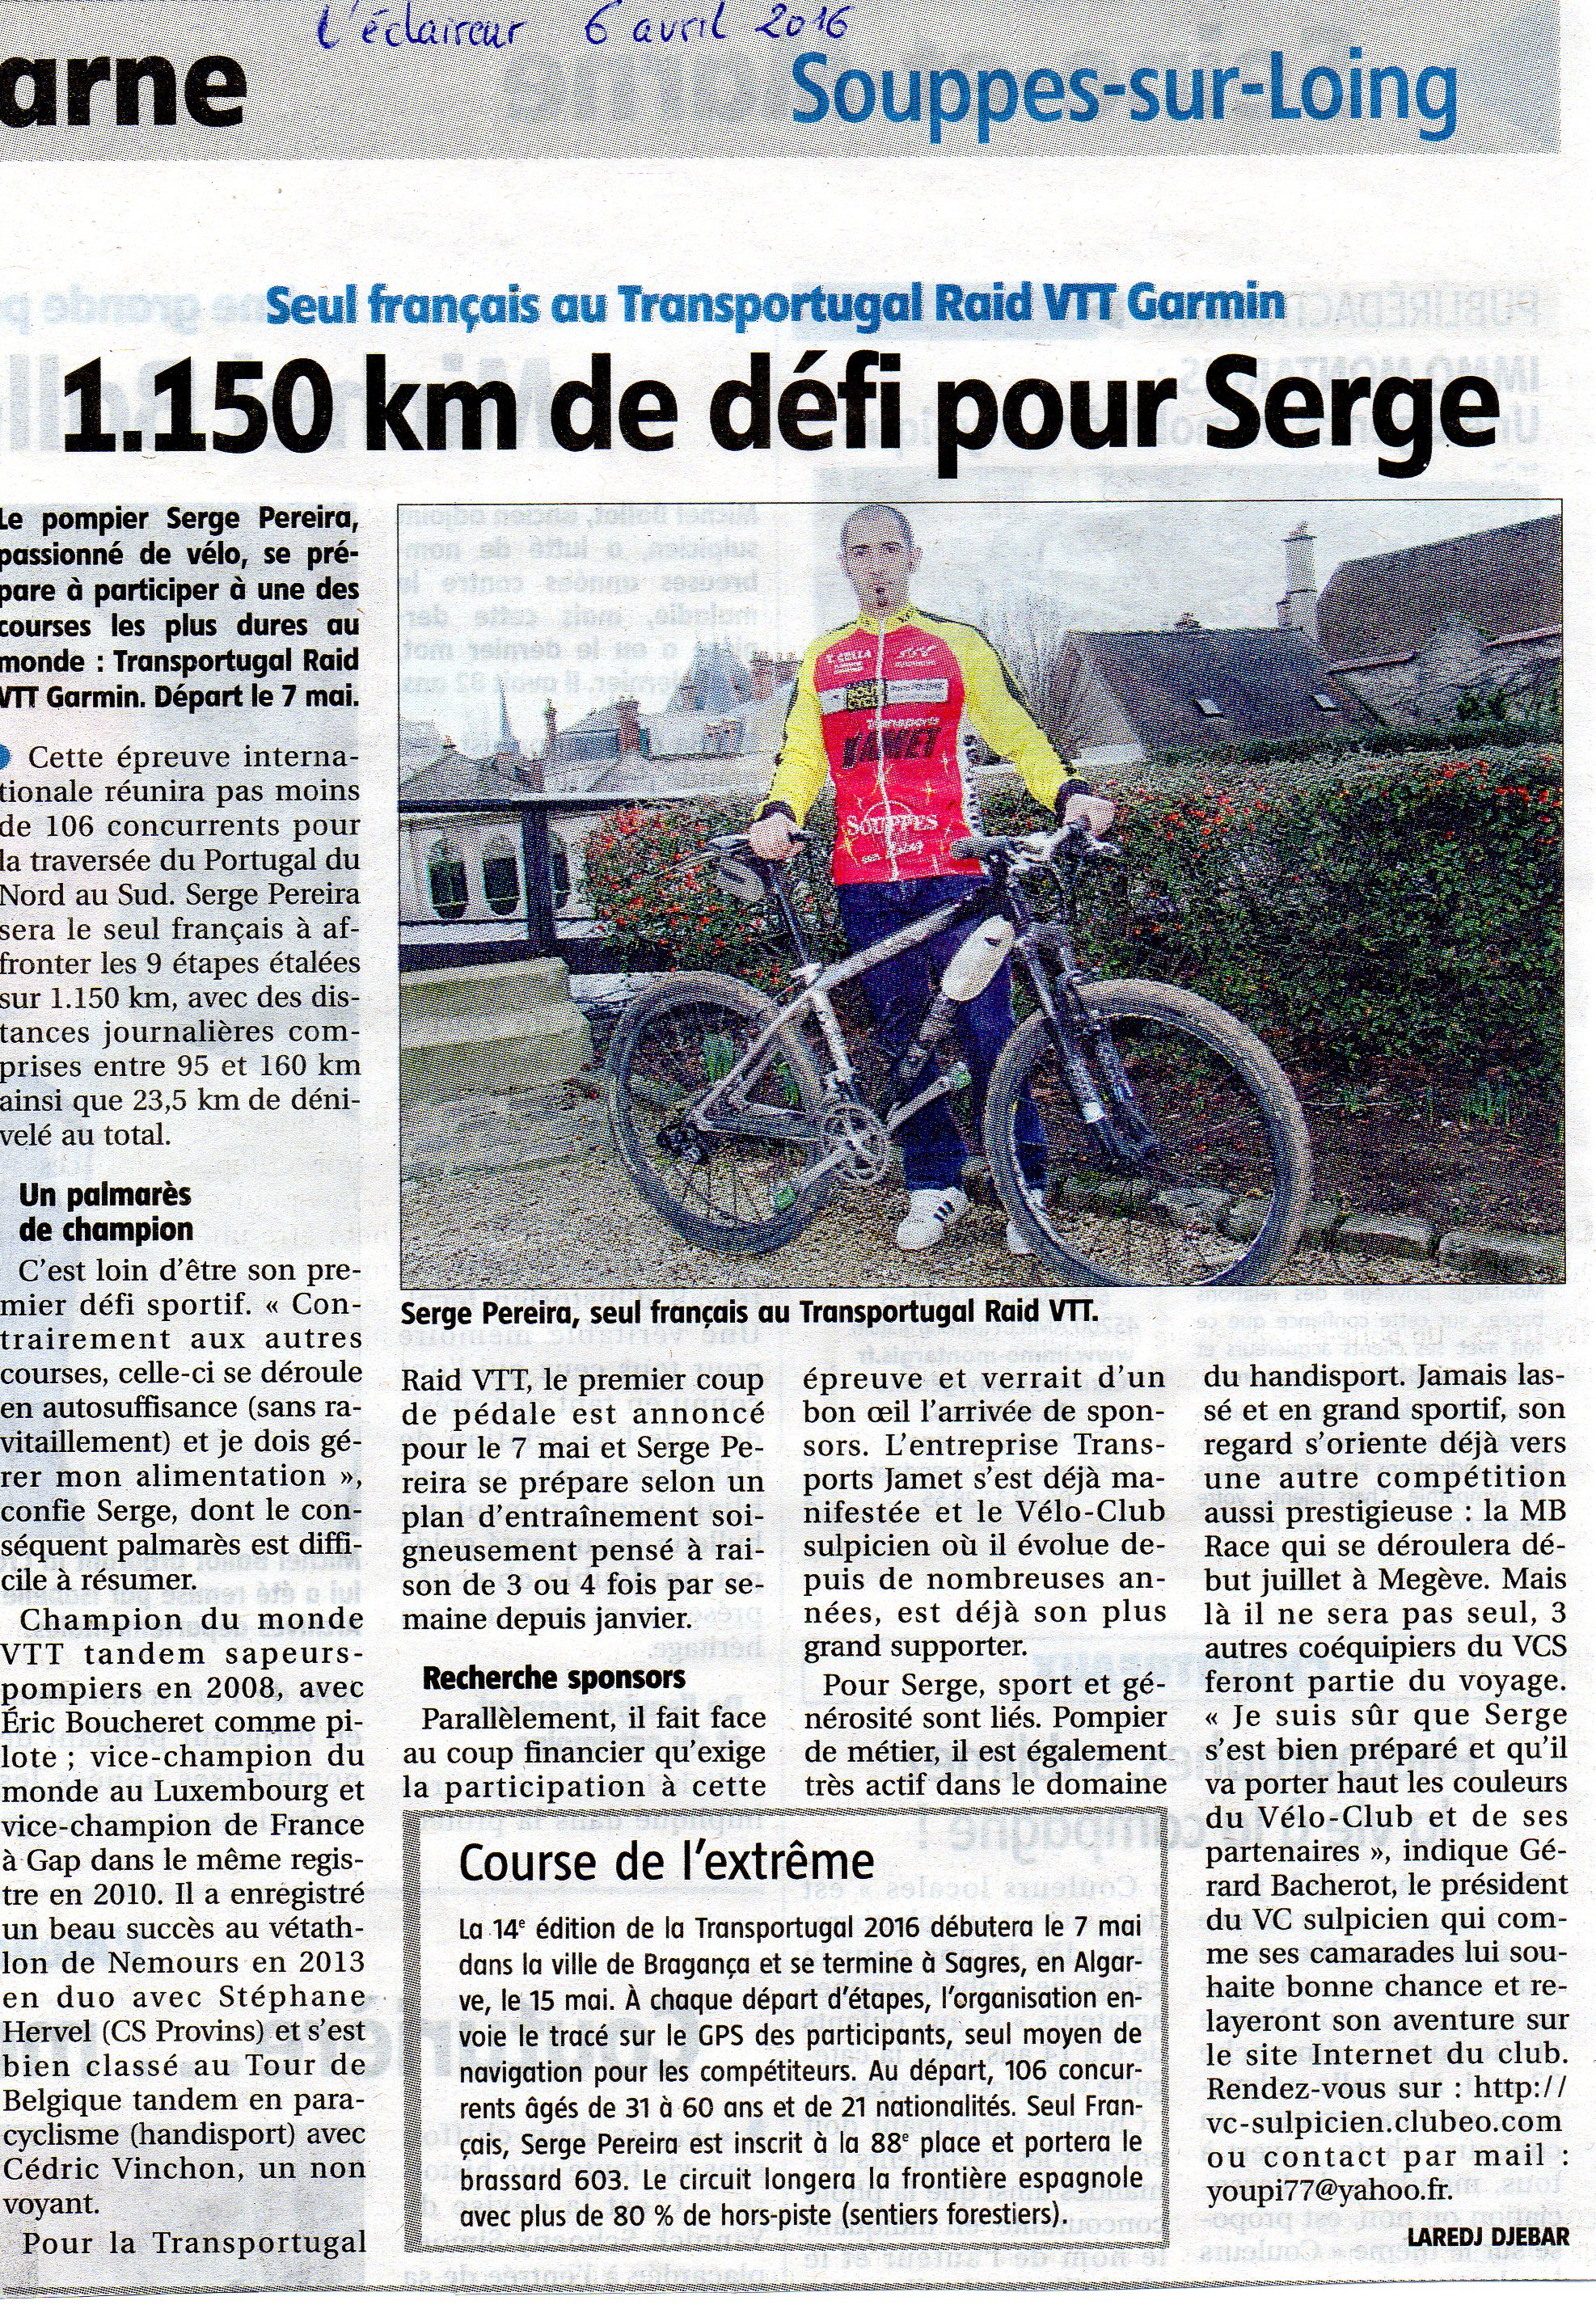 Serge Pereira Transportugal article 1